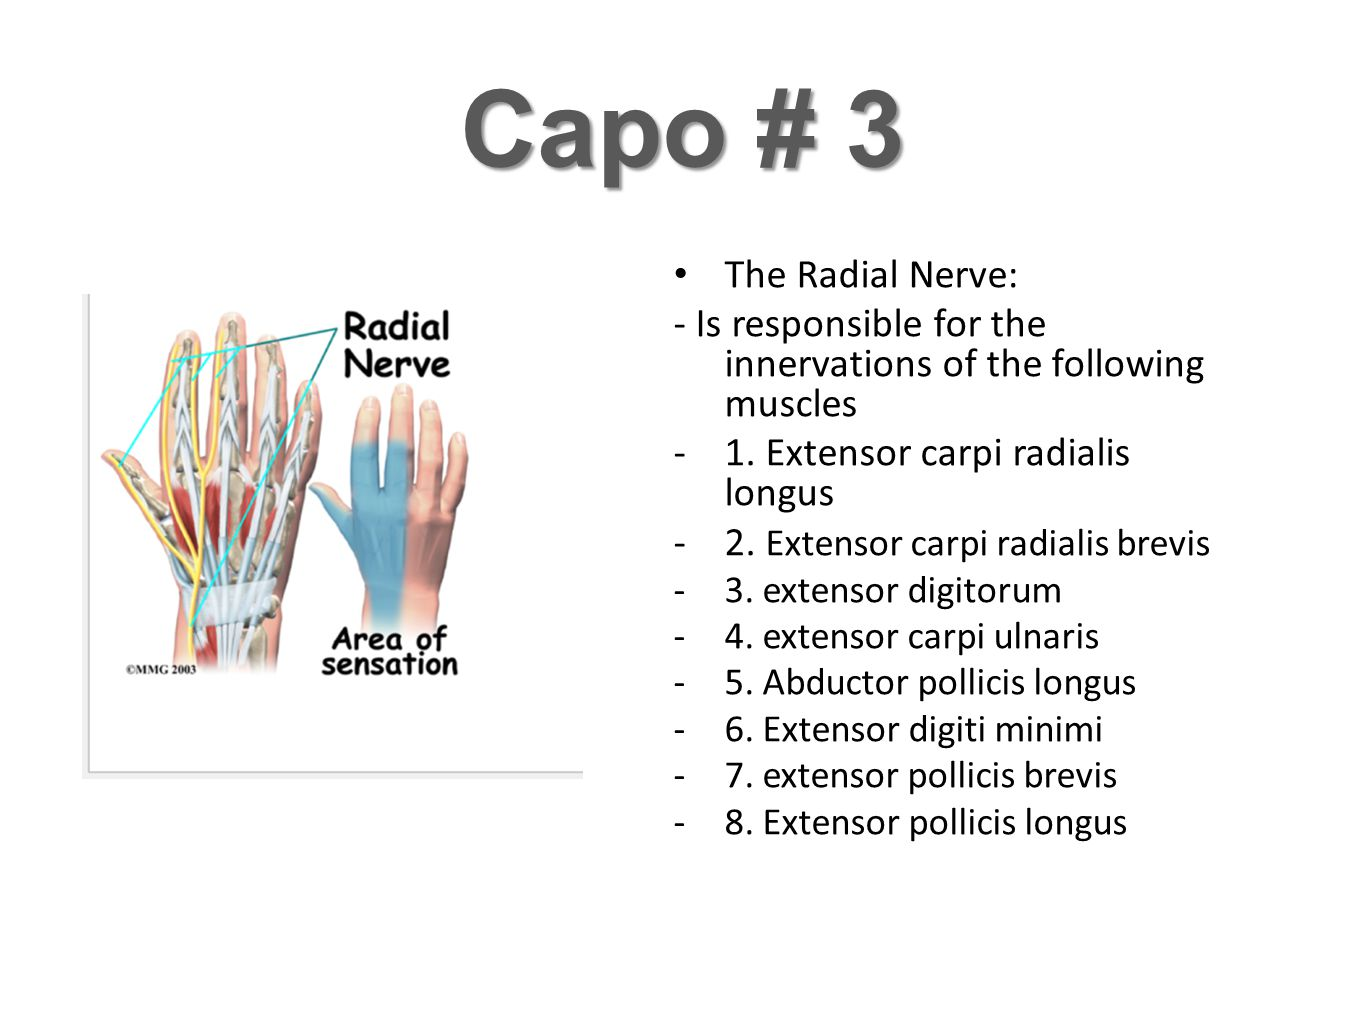 Capo # 3 The Radial Nerve: